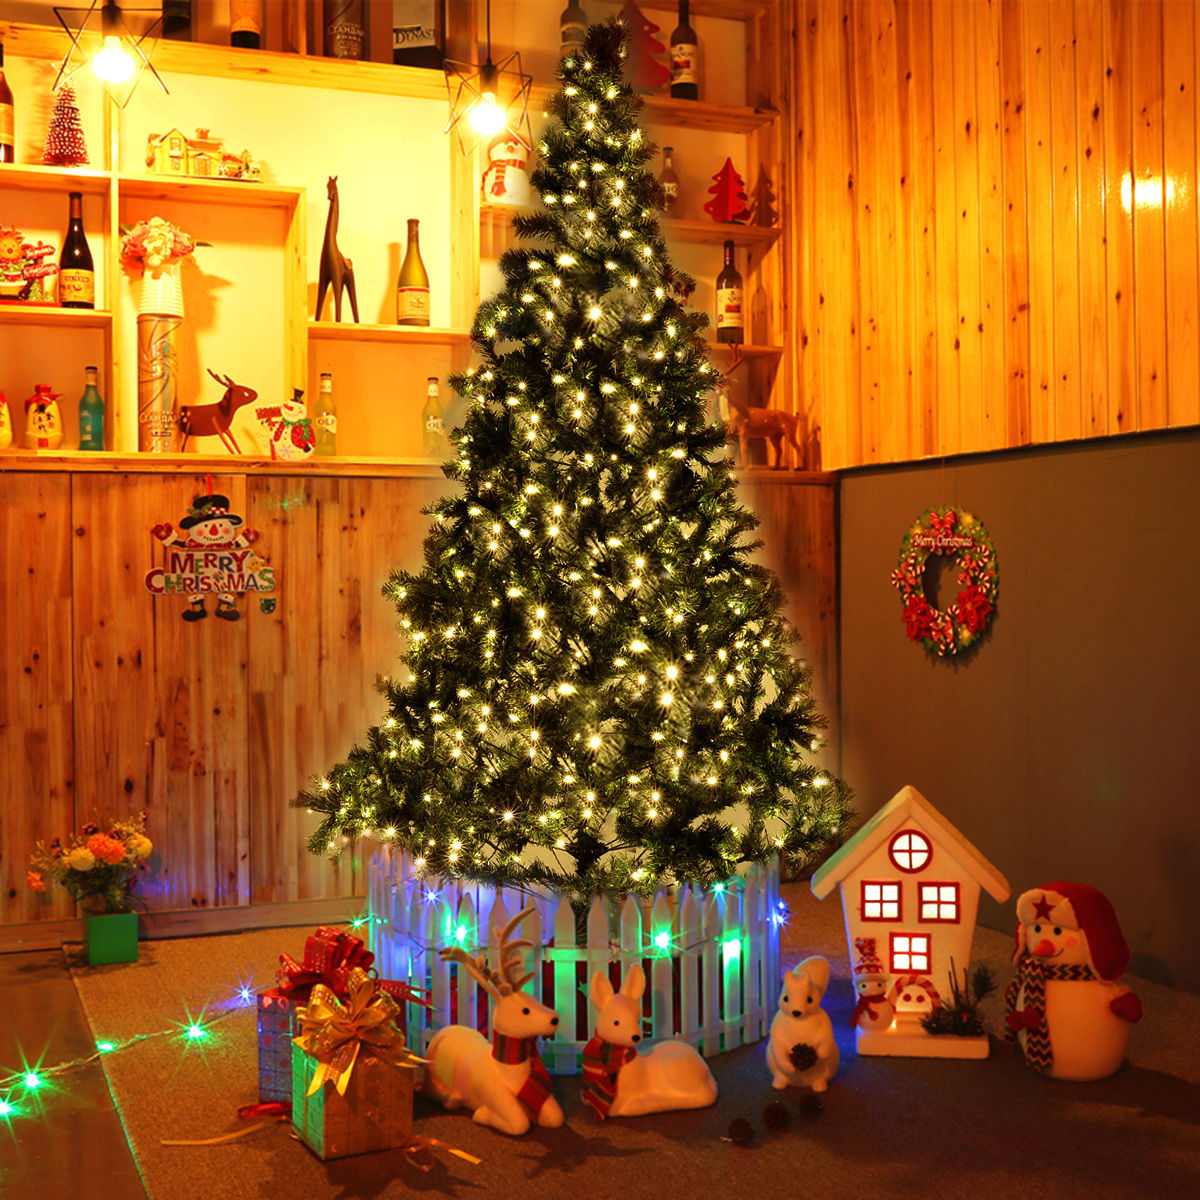 Costway 8 Ft Pre Lit Artificial Christmas Tree W/450 LED Lights U0026 Stand